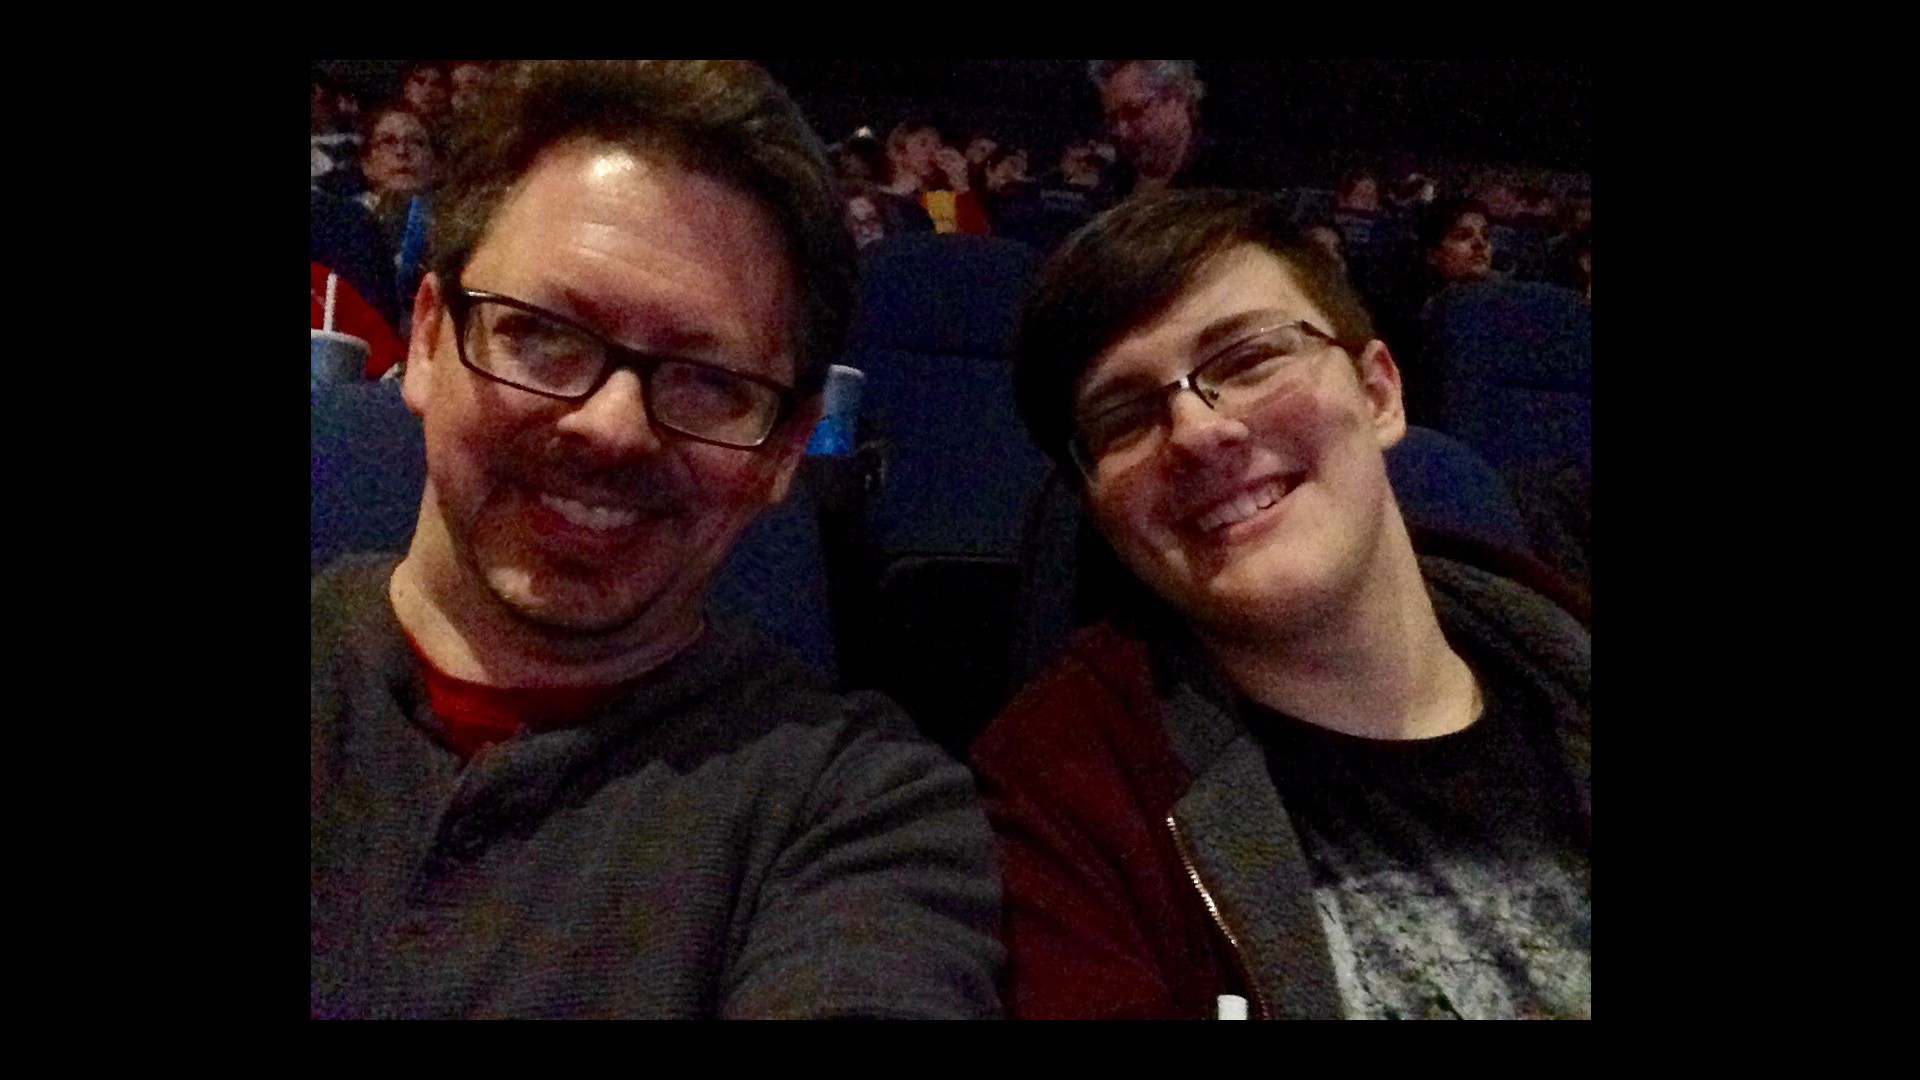 Me and son at Star Wars: The Force Awakens